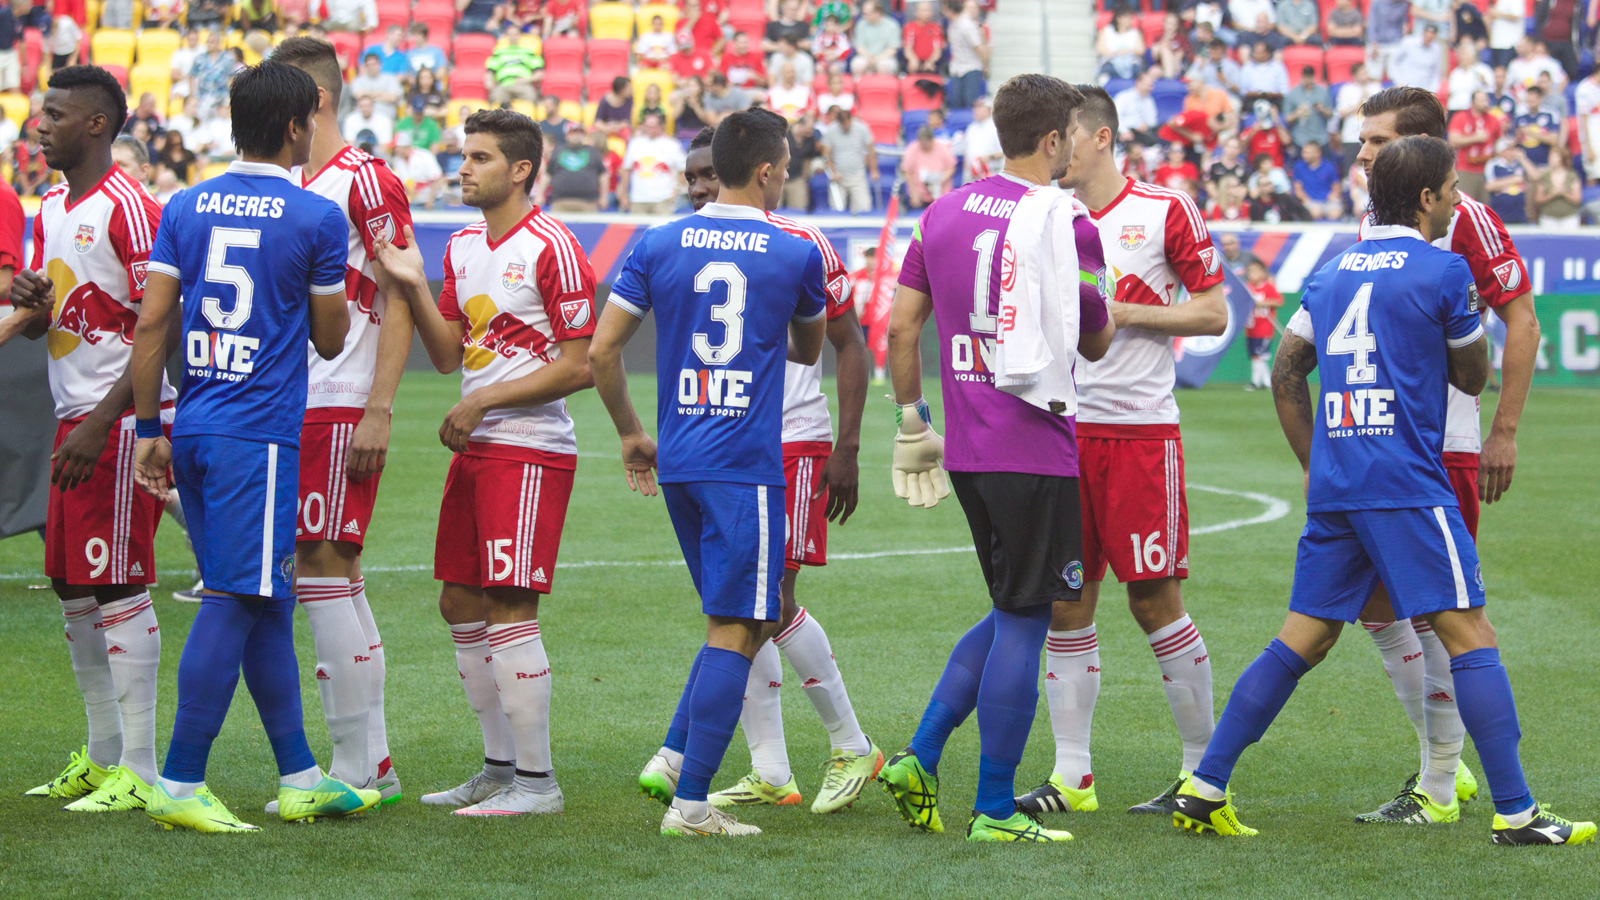 The New York Cosmos (Blue) and the New York Red Bulls (White) shake hands before the beginning of their U.S. Open Cup fifth-round match at Red Bull Arena in Harrison, New Jersey.